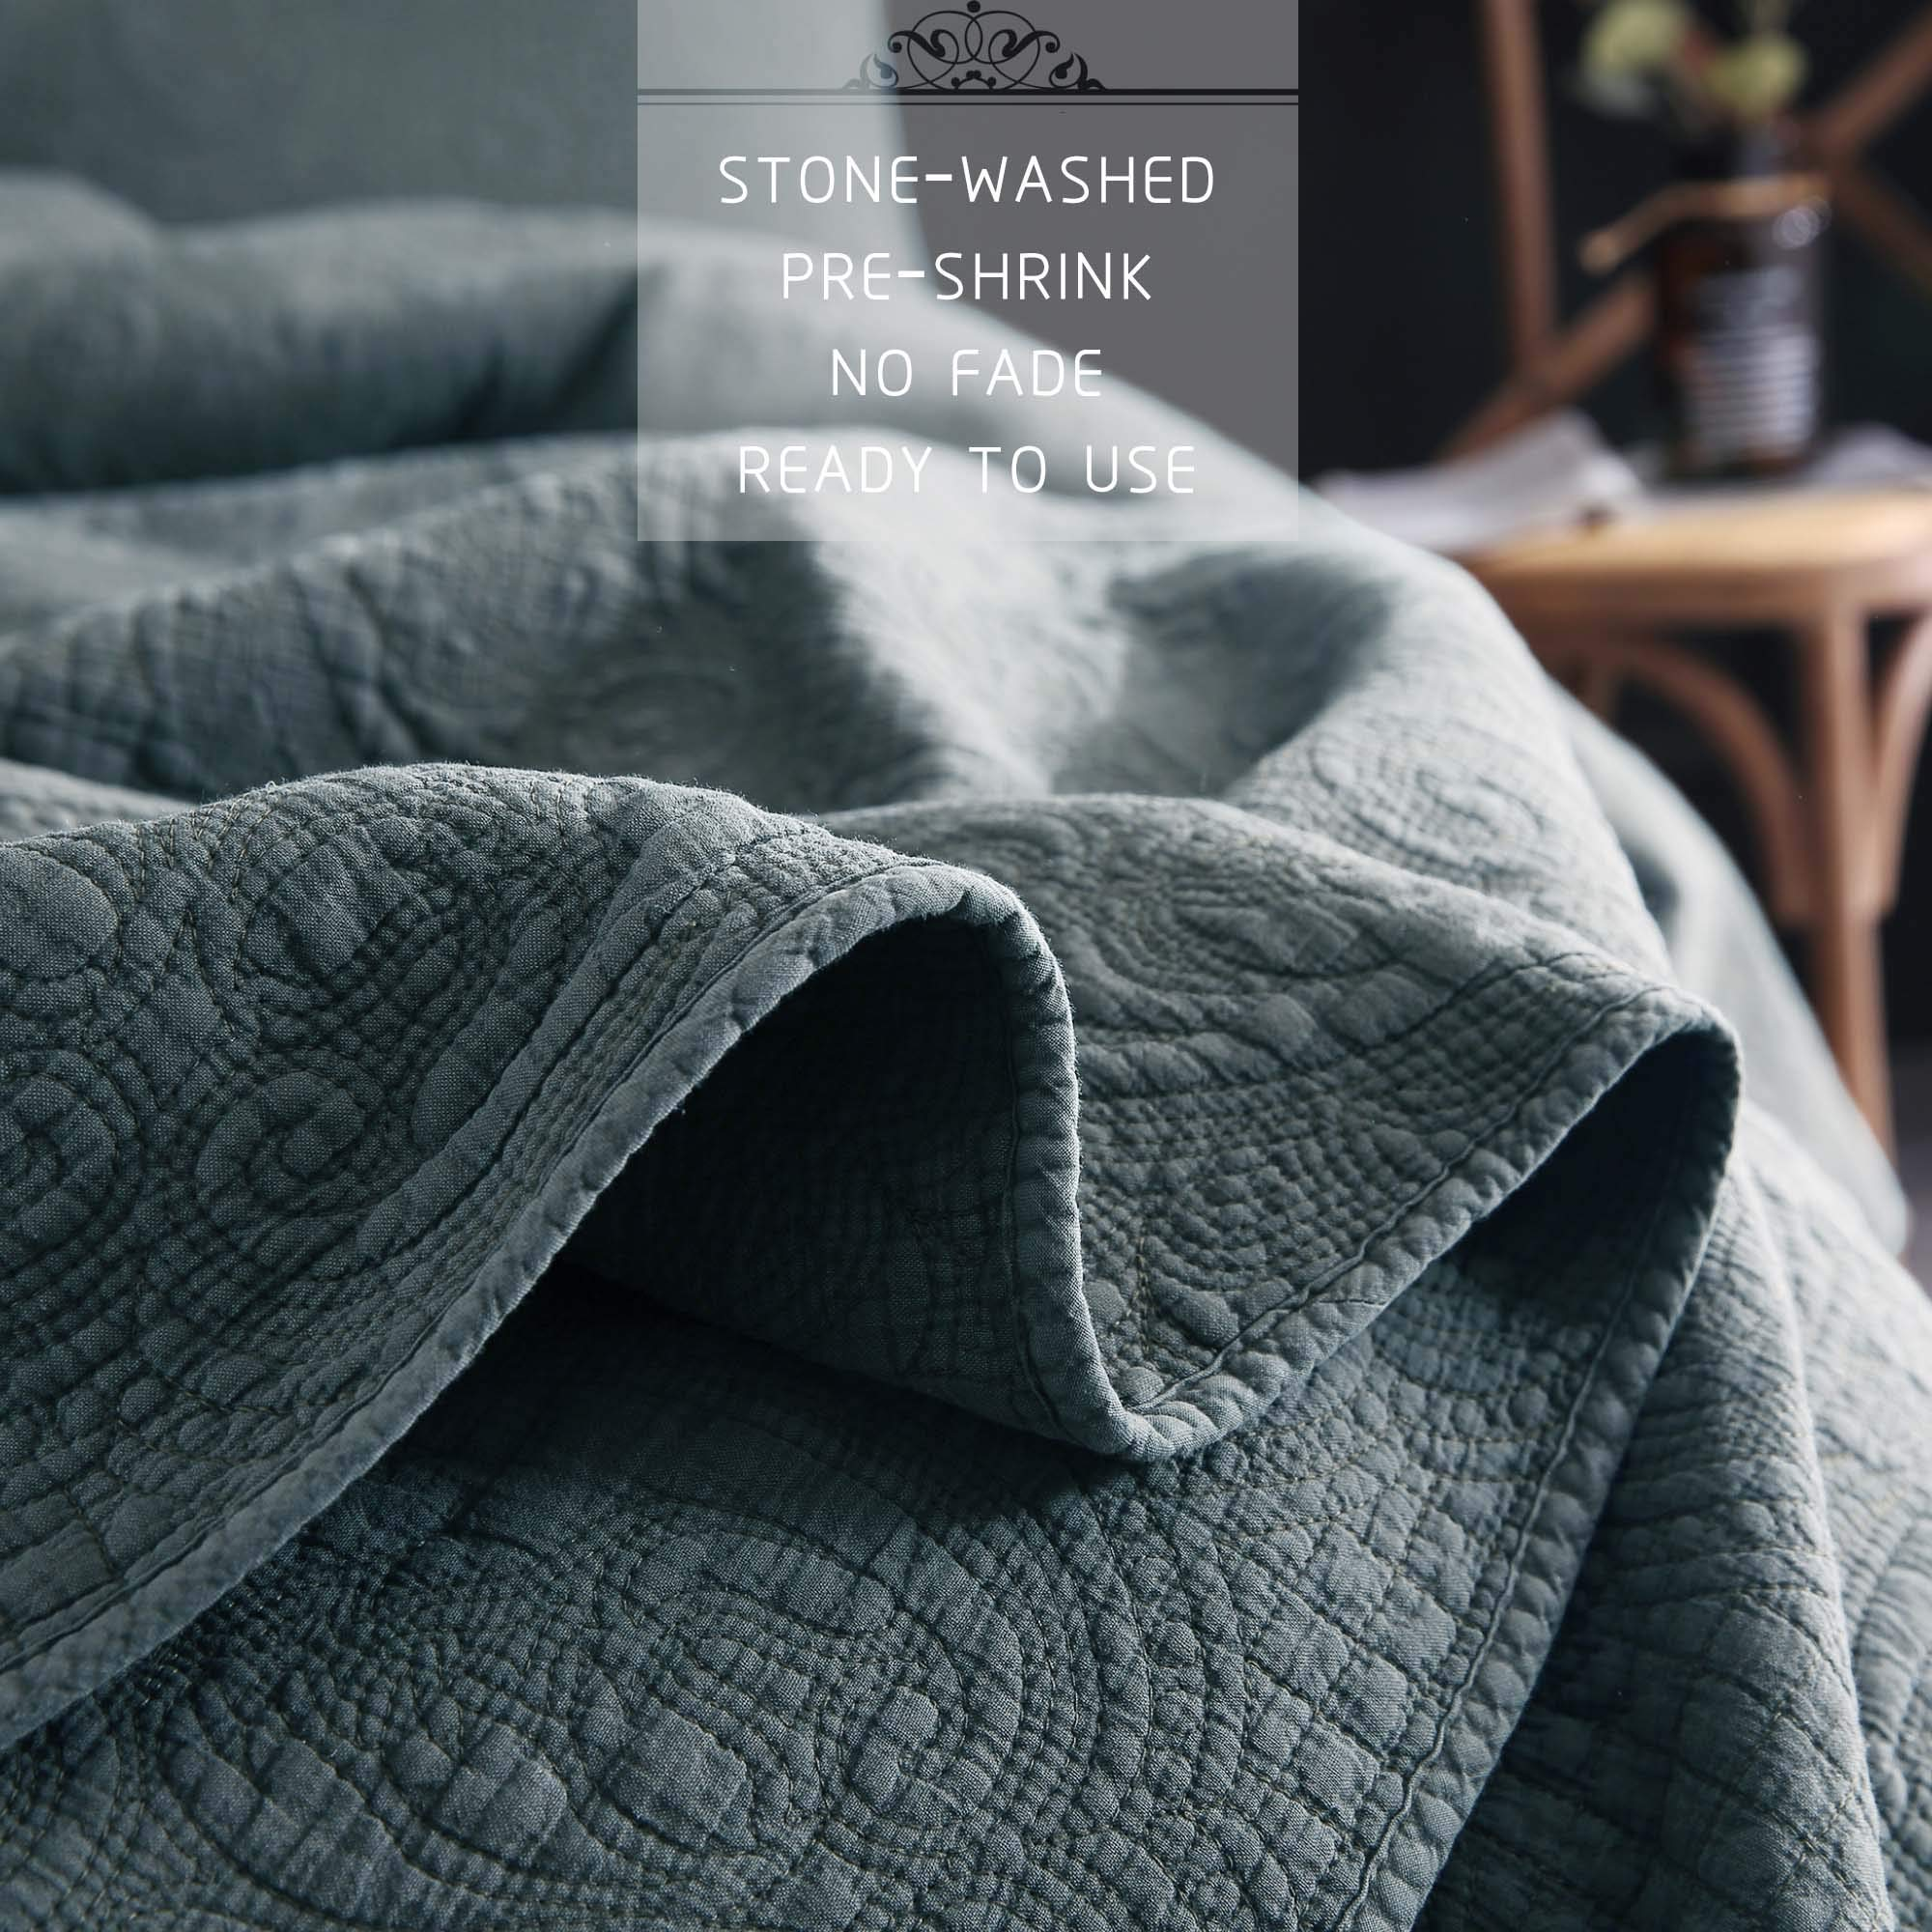 CDM product KASENTEX Stone Washed Quilted Coverlet Set with 2 Standard Shams, 100% Cotton Ultra Soft Bedspread, Traditional Country Chic Floral Embroidery Patterned, Full/Queen, Chambray Blue small thumbnail image